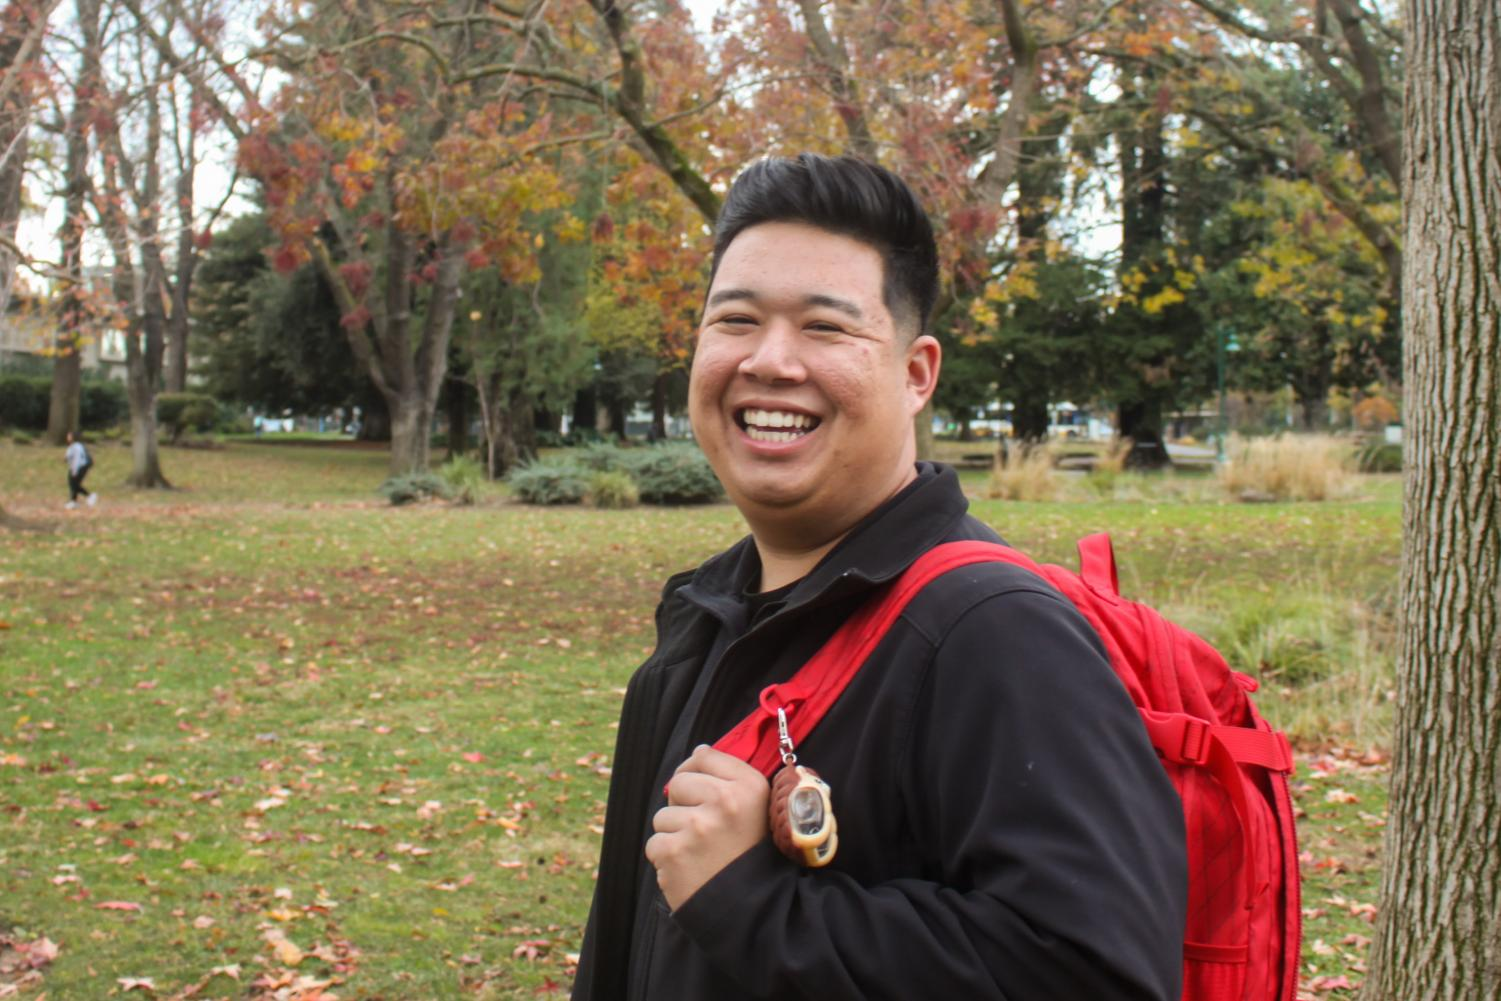 Kevin Nguyen is an on-air personality for 106.5 The End as